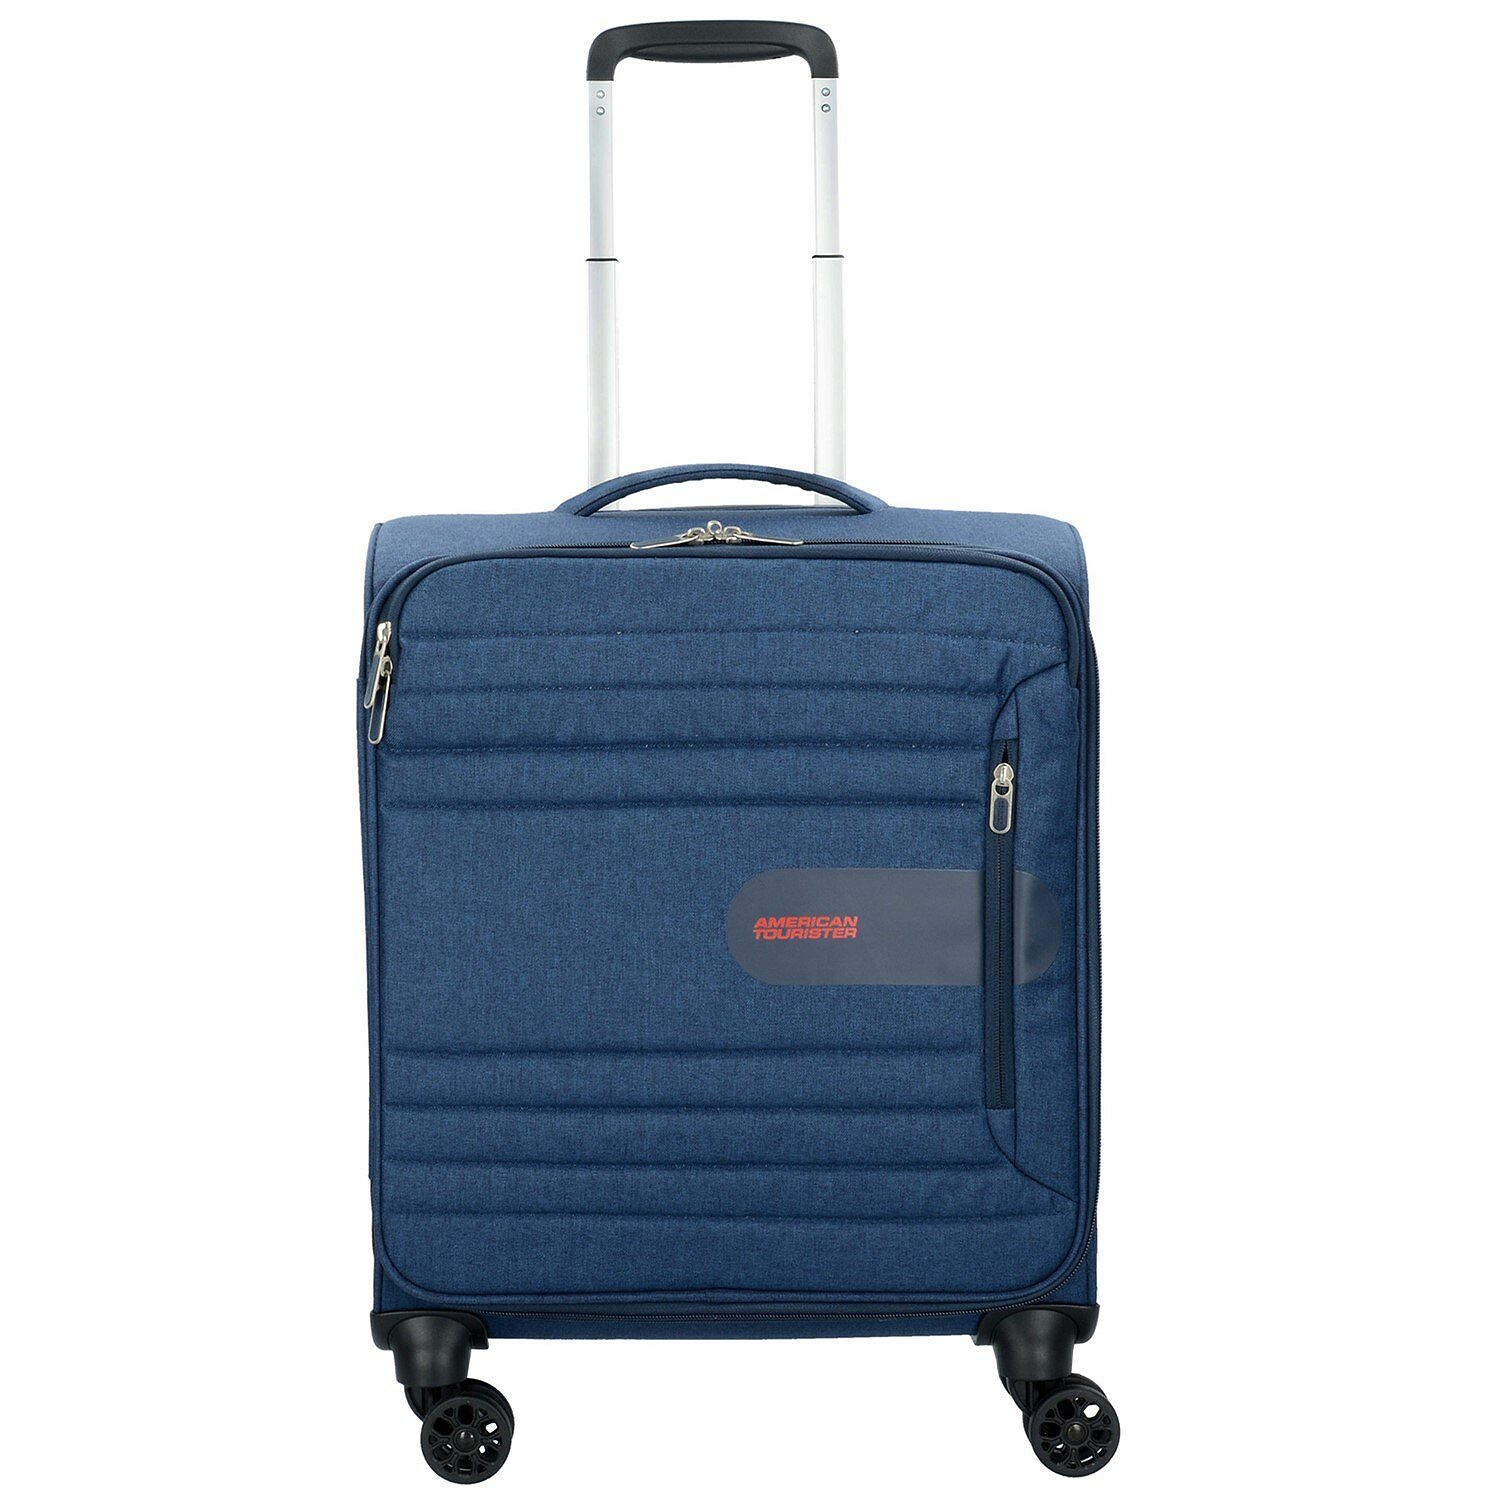 american tourister sonicsurfer valise de cabine 4 roulettes 55 cm midnight navy sur premium mall. Black Bedroom Furniture Sets. Home Design Ideas